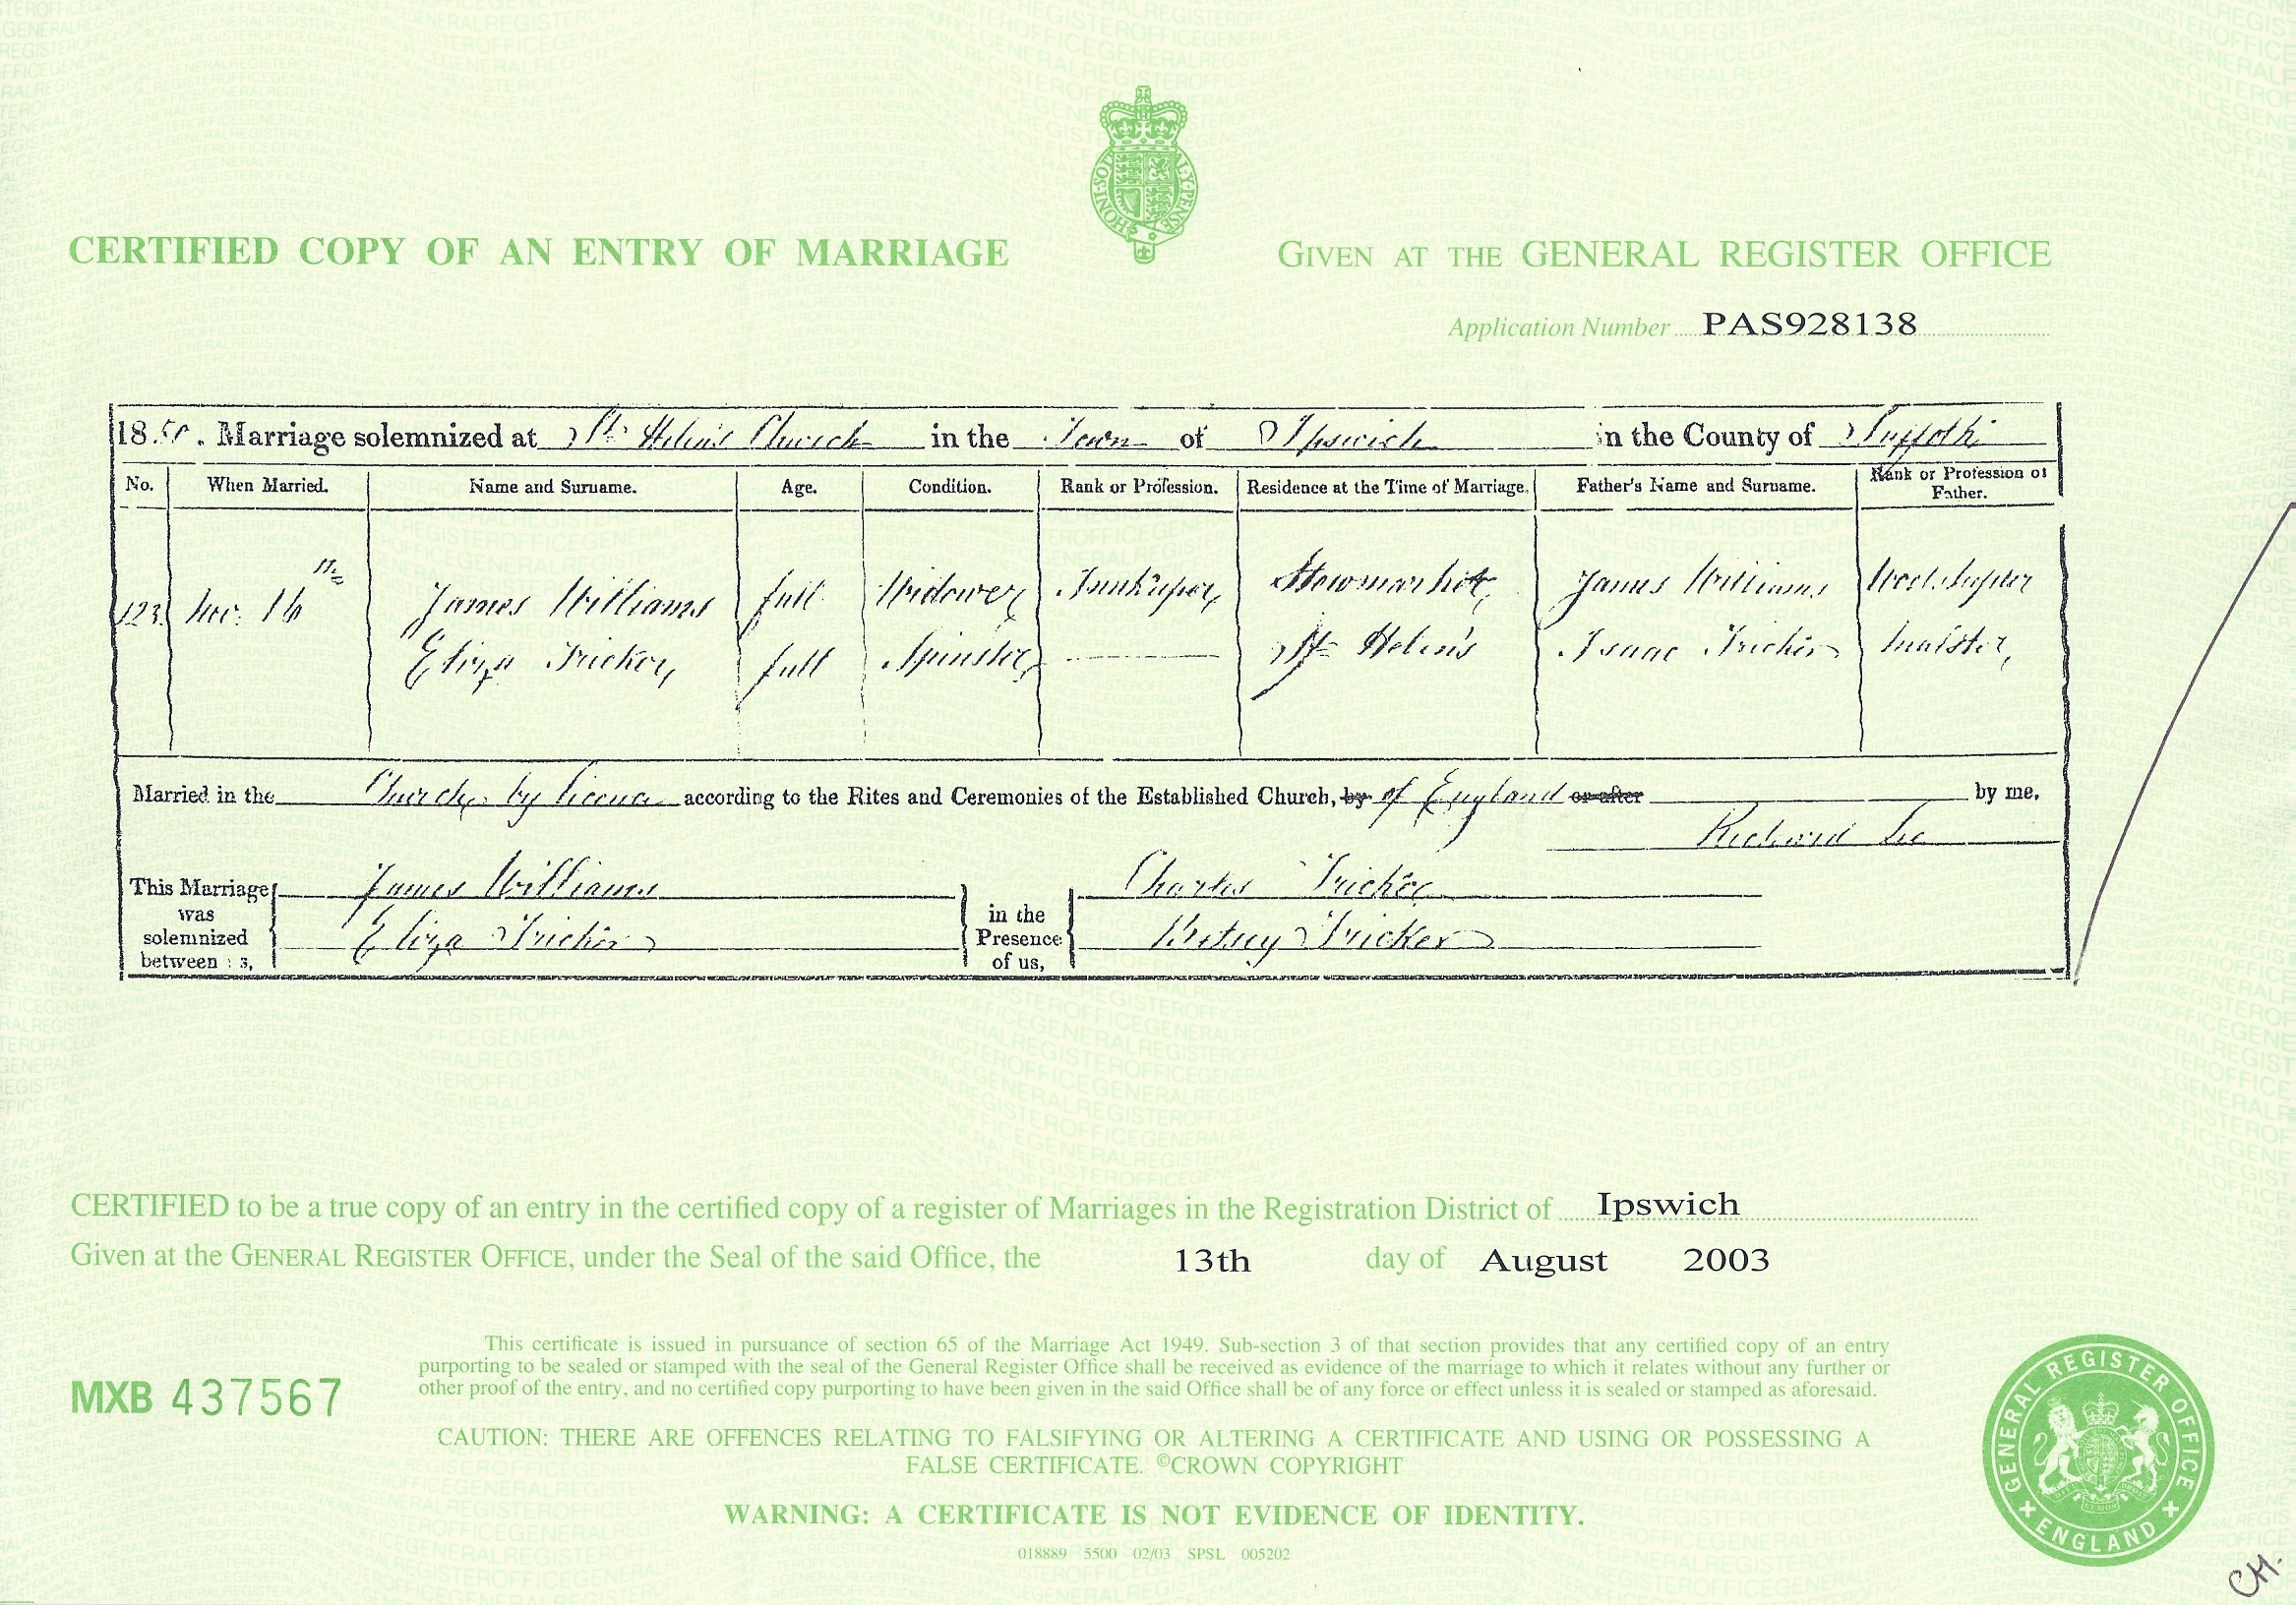 Marriage Certficate of James Williams and Eliza Tricker